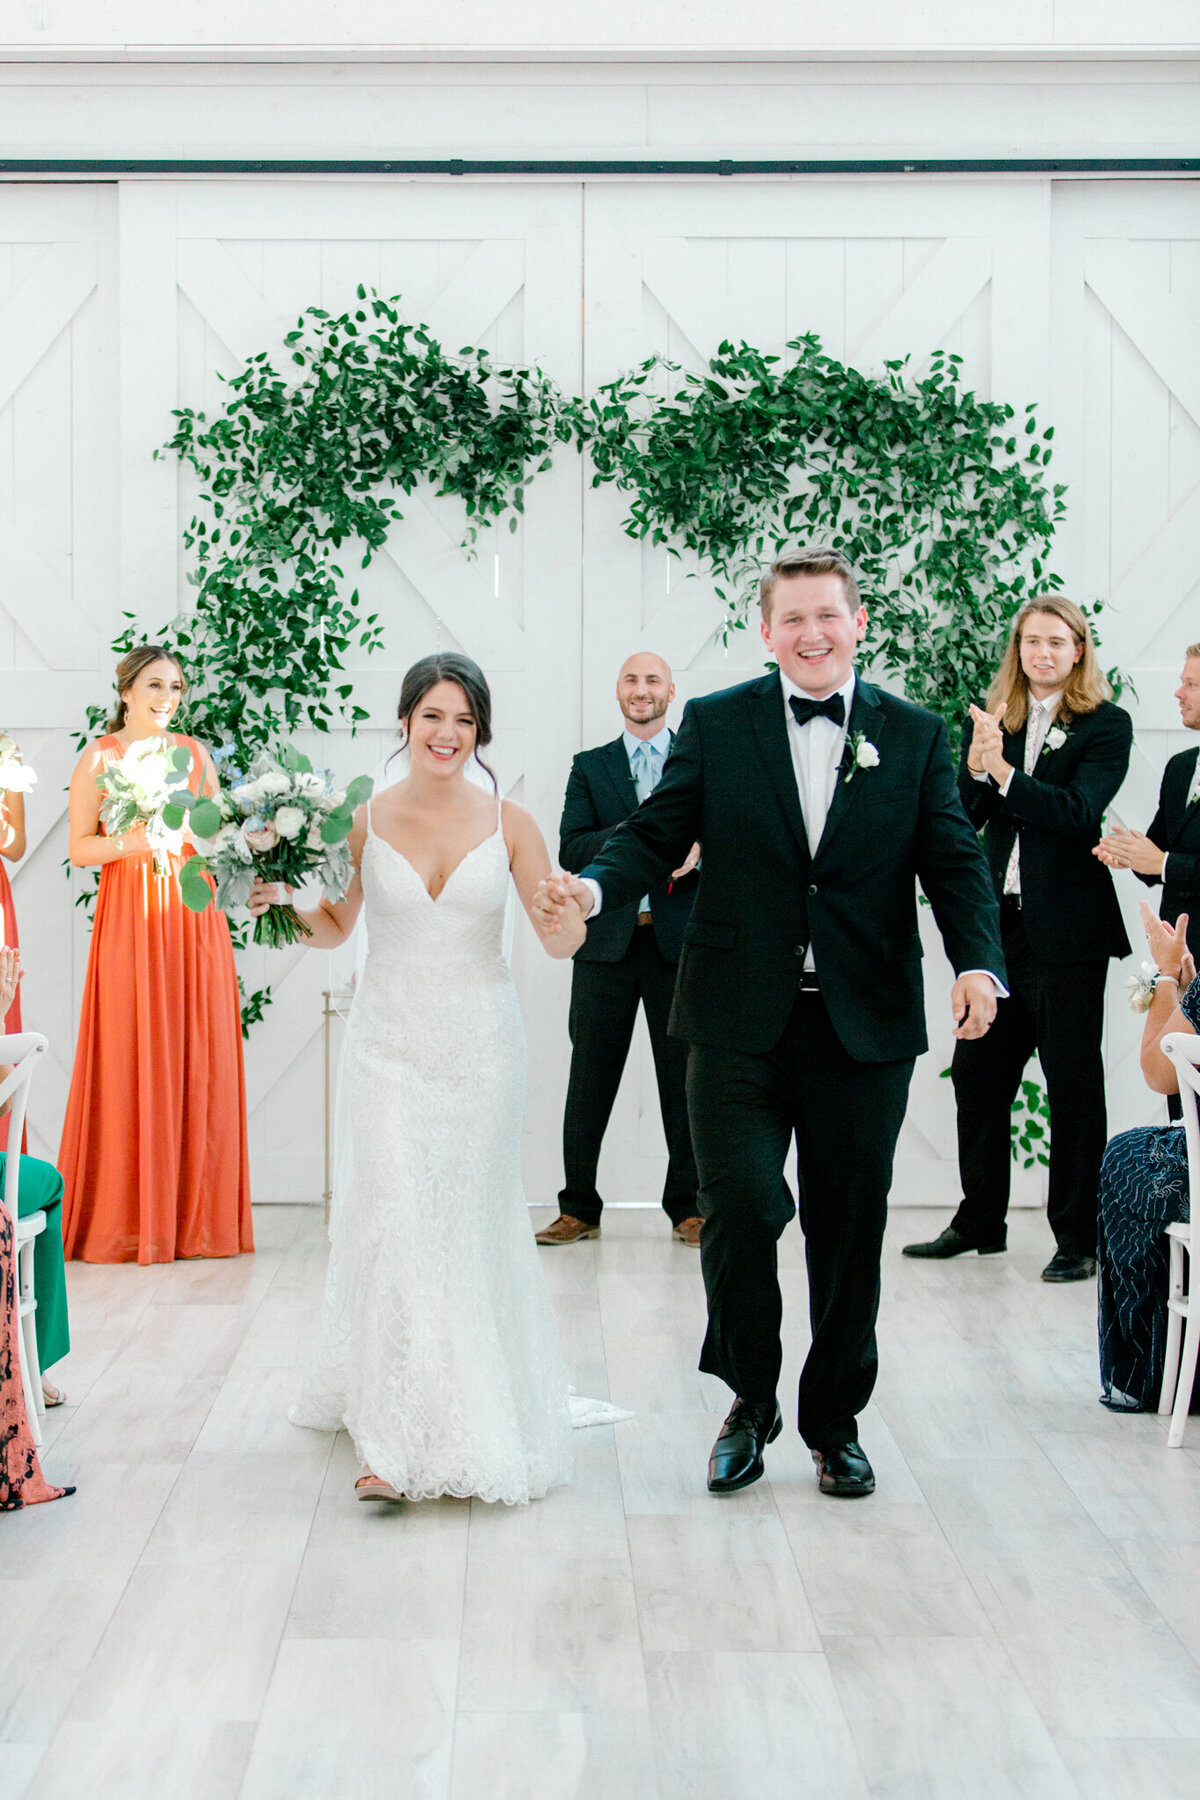 Anna & Billy's Wedding at The Nest at Ruth Farms | Dallas Wedding Photographer | Sami Kathryn Photography-88